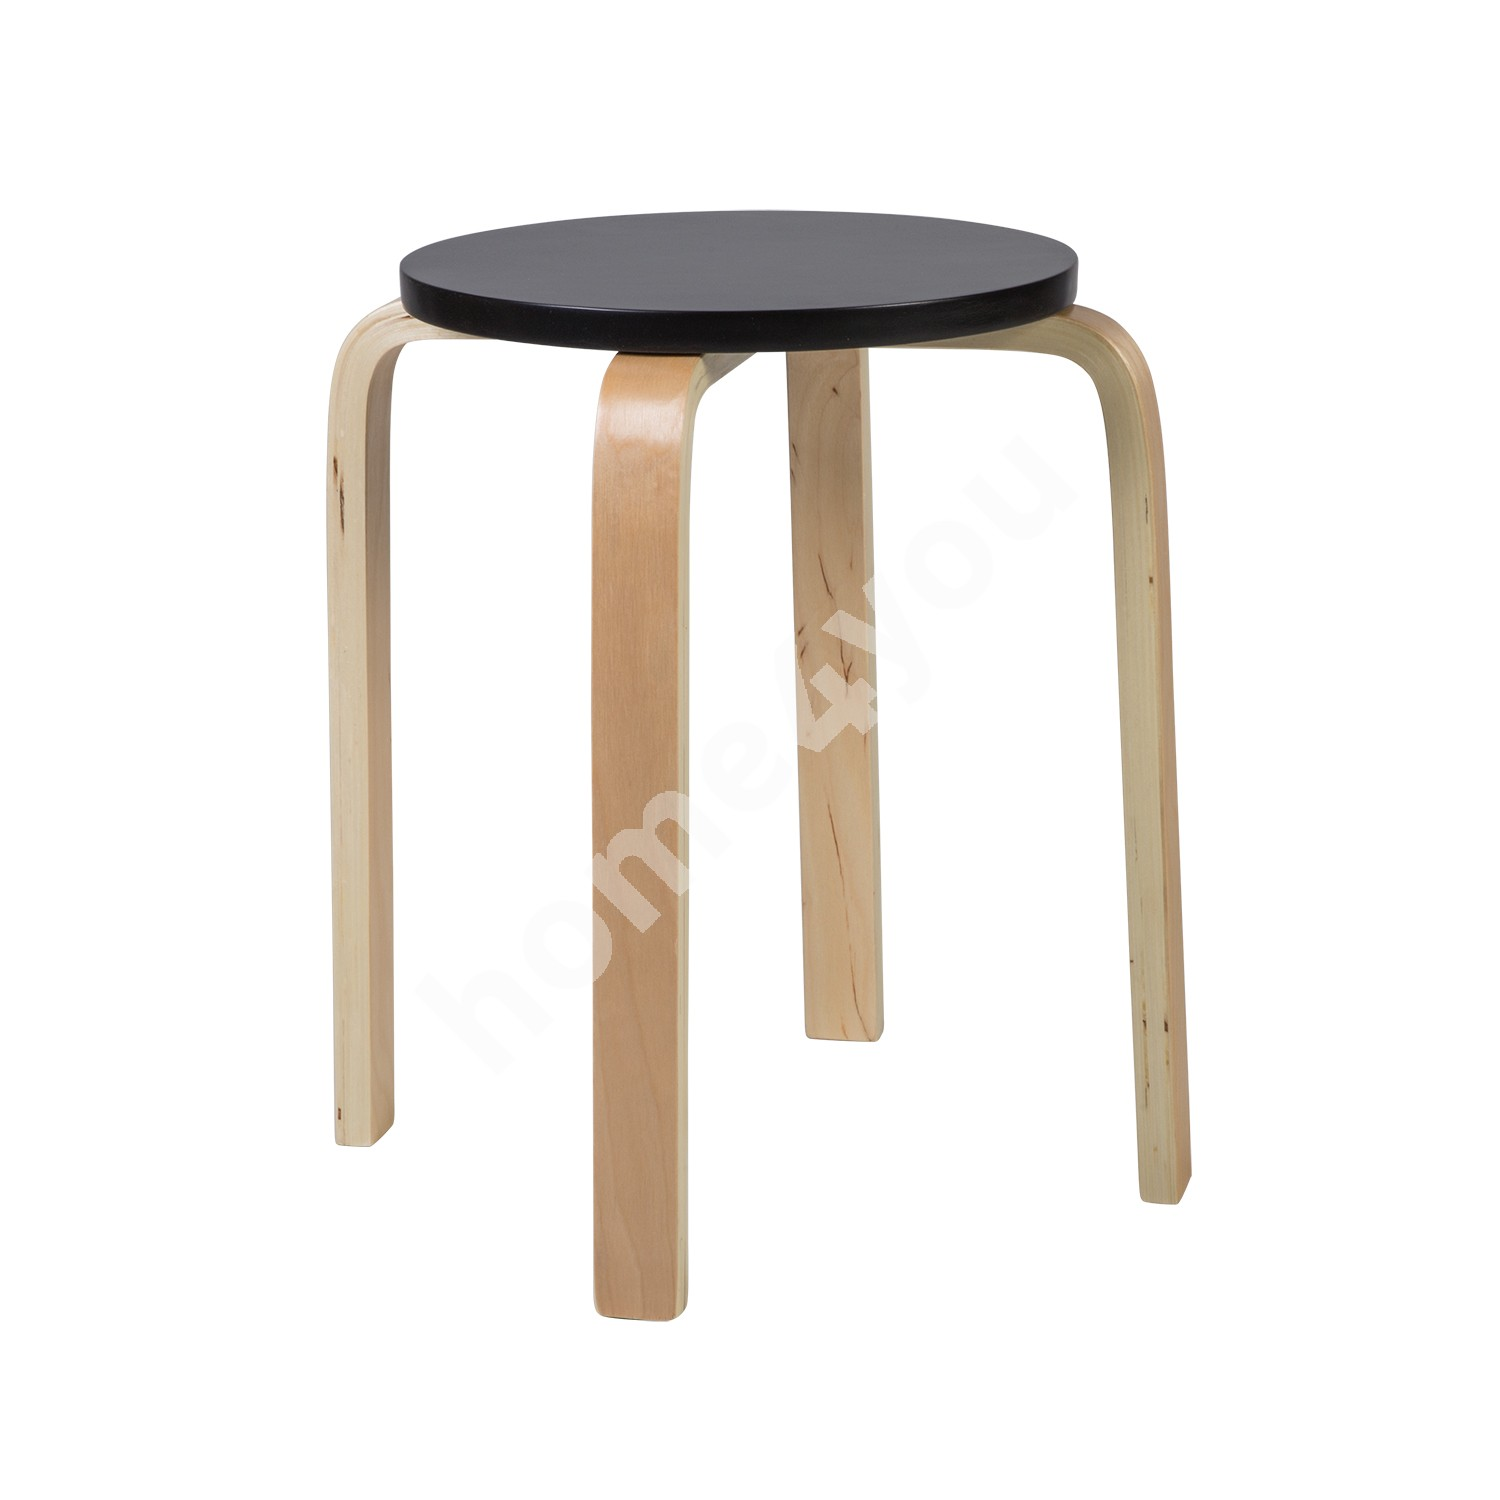 Stool SIXTY-1  D41xH45cm, material: glulam with birch veneer, color: black - natural